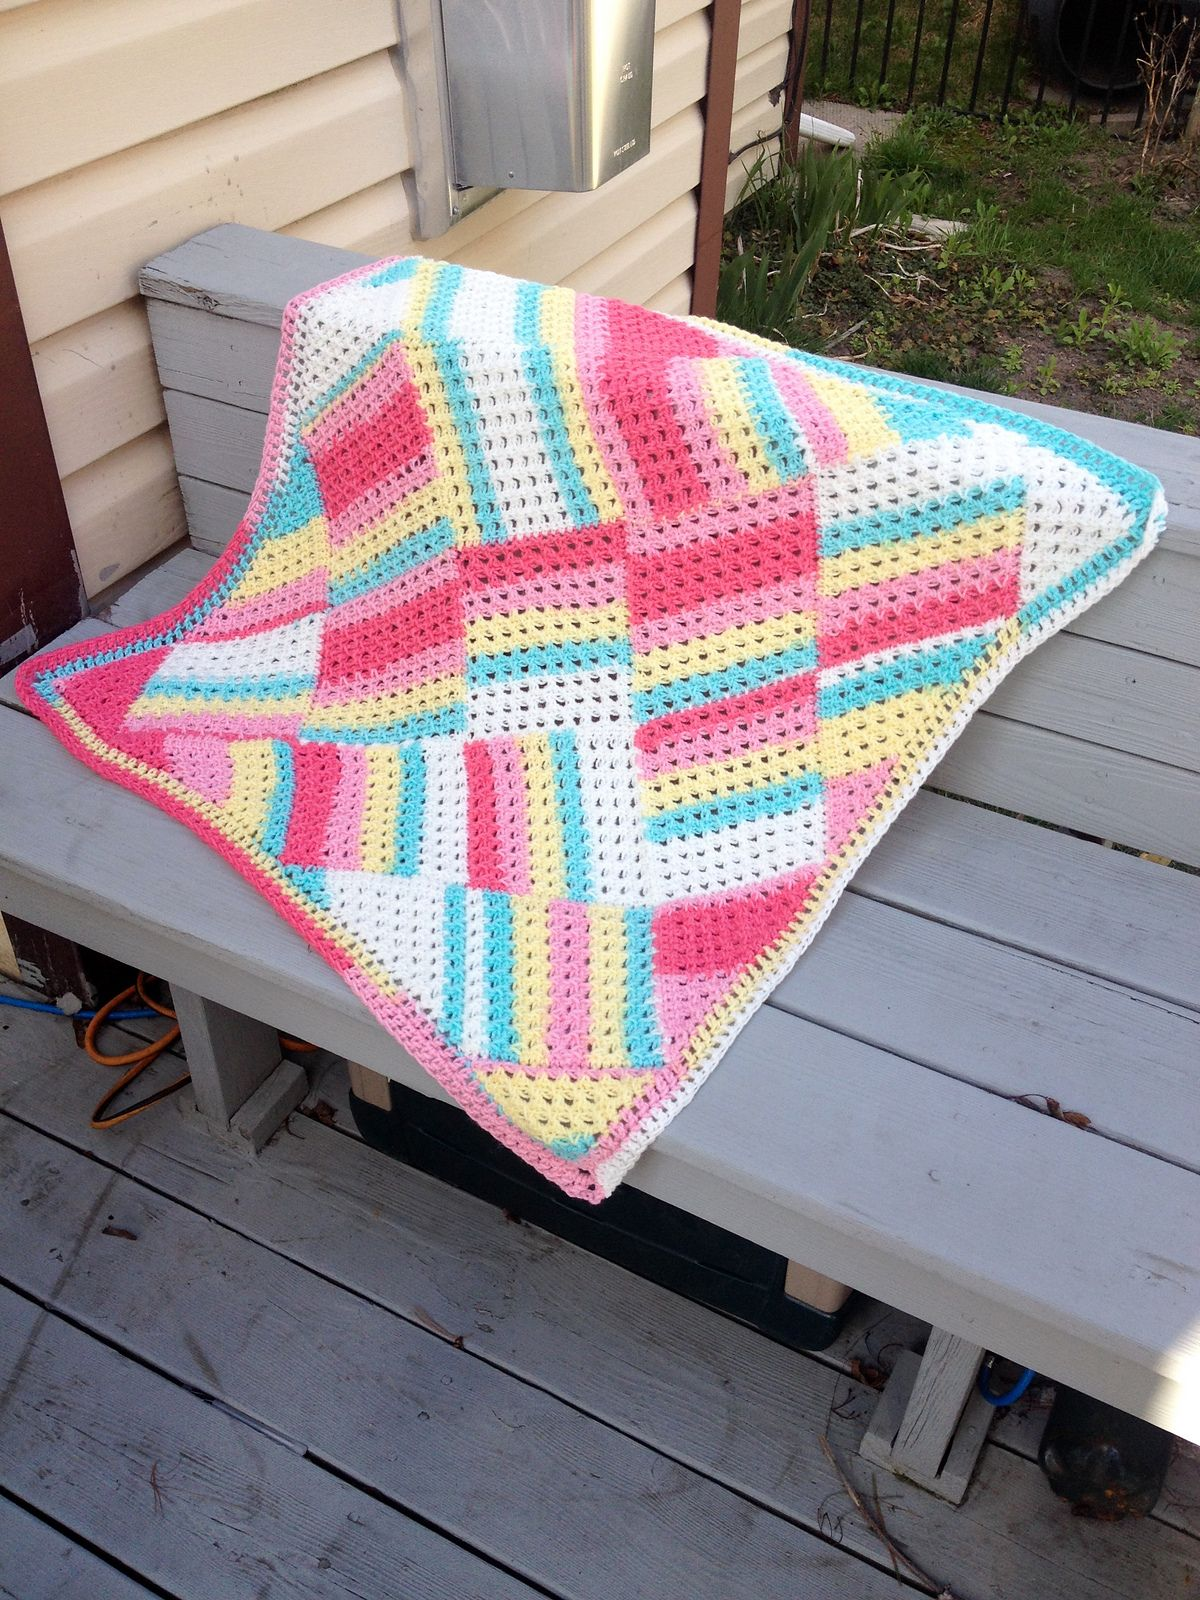 Make this sweet crochet baby blanket by american crochet with lion free crochet pattern for the tutti frutti baby blanket by nicole cormier of tunisian crochet chick for american crochet bankloansurffo Gallery